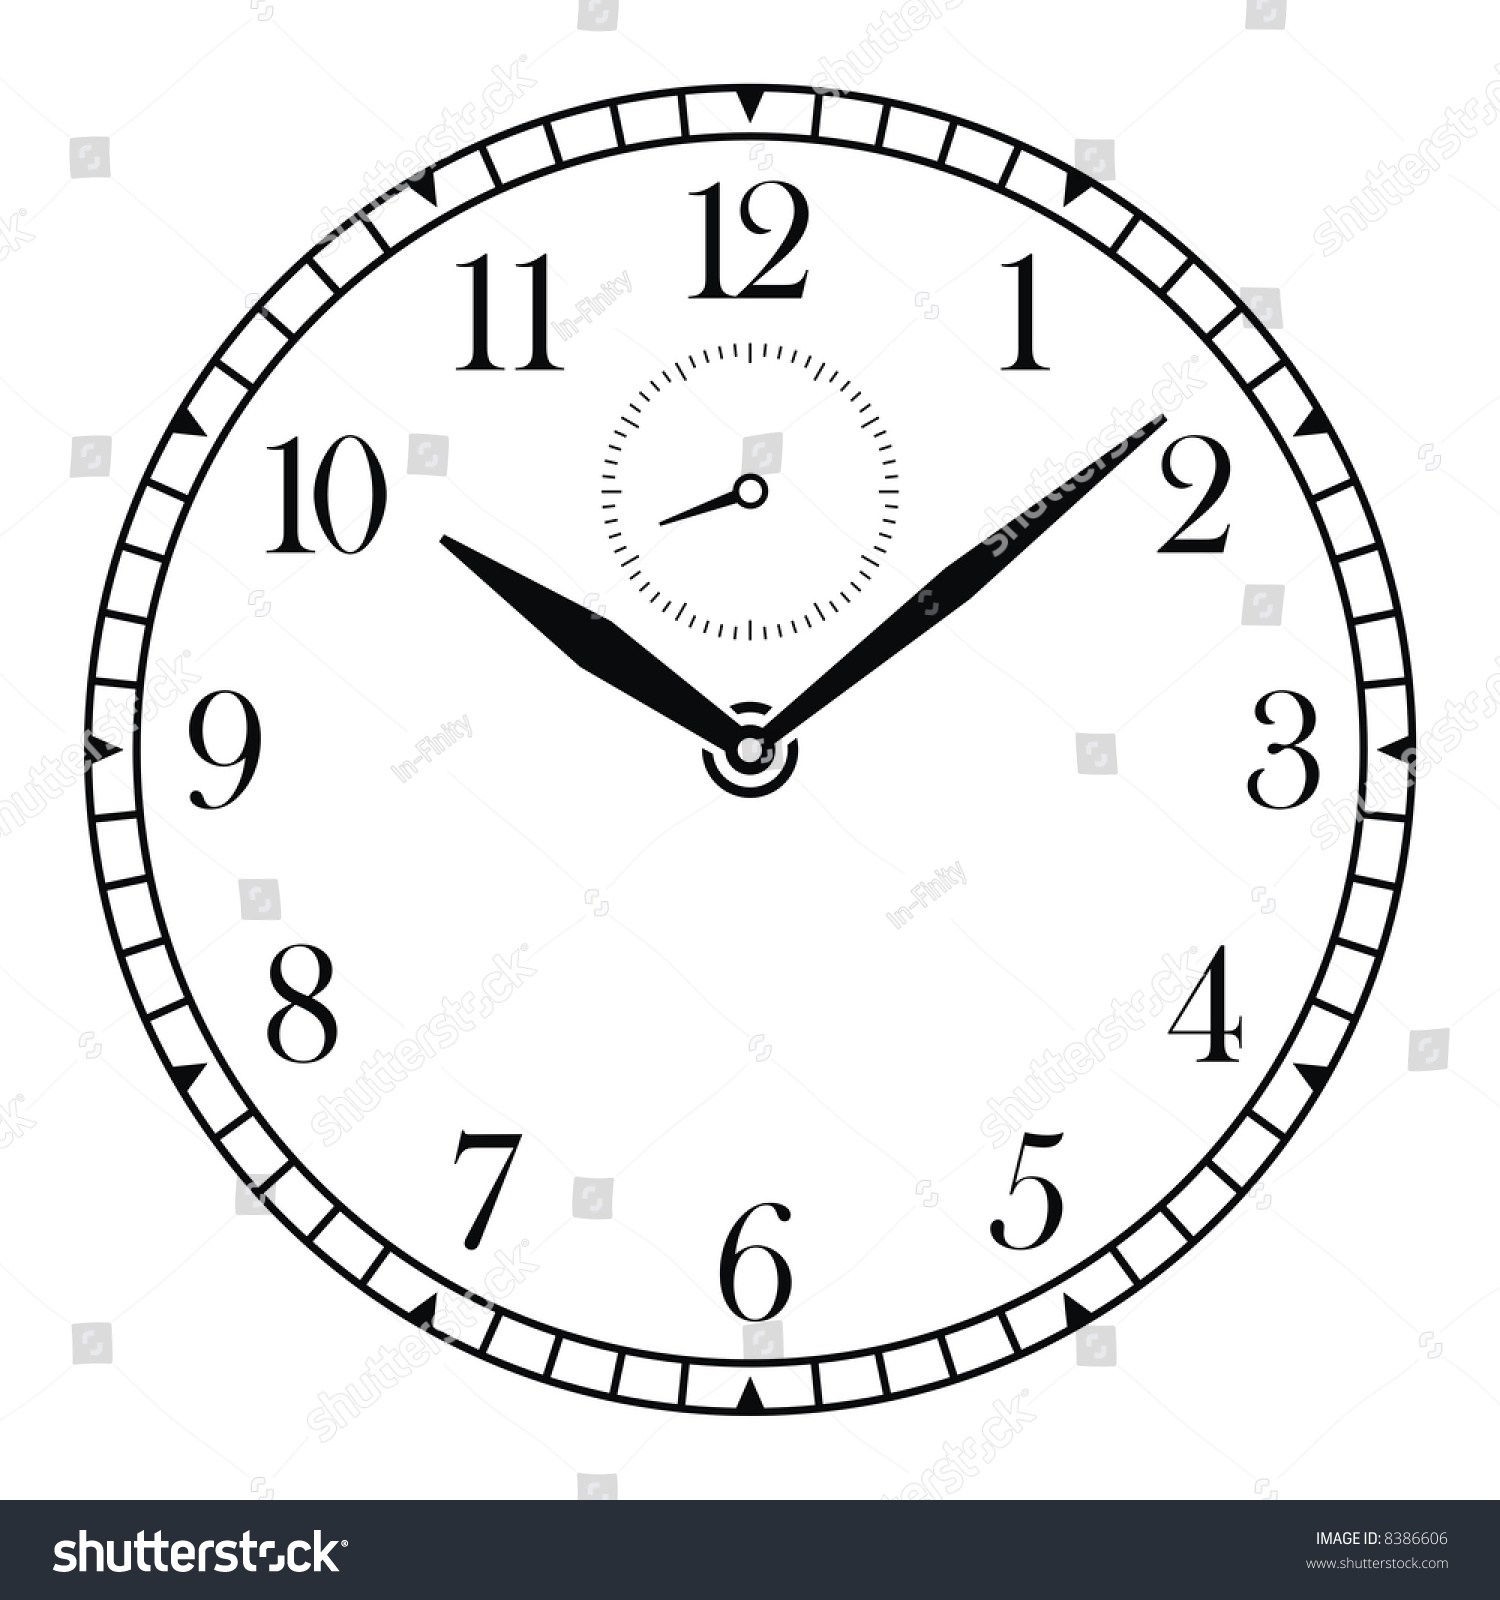 worksheet Clock Face With Hands vector clock face hands stock 8386606 shutterstock and hands